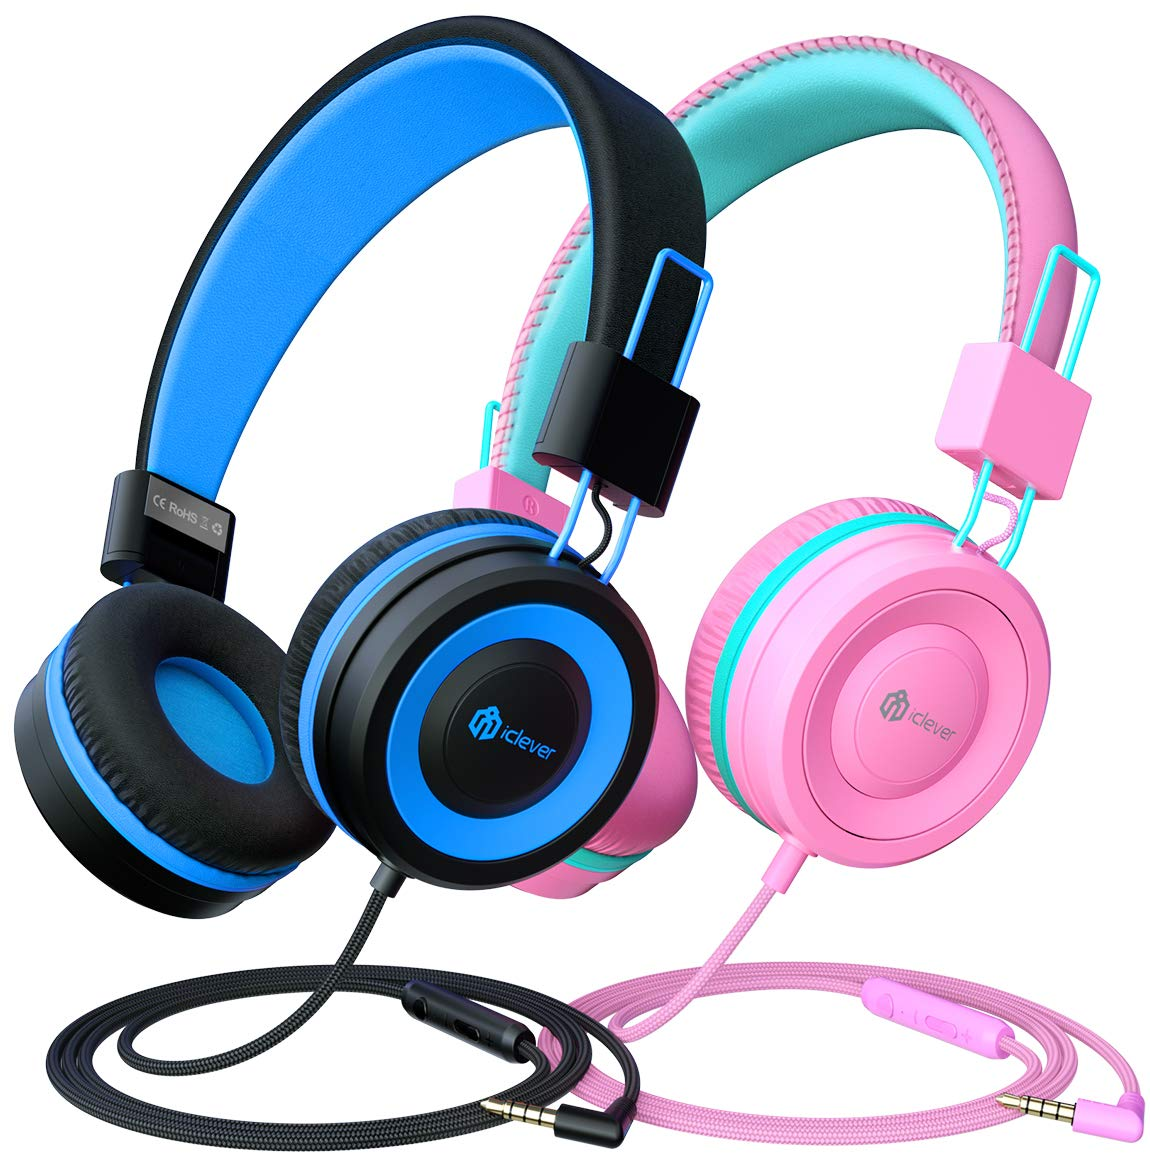 iClever Kids Headphones 2 Pack - Wired Headphones for Kids with MIC, Volume Control Adjustable Headband, Foldable - on Ear Headphones Kids for School iPad Tablet Airplane,Blue/Pink